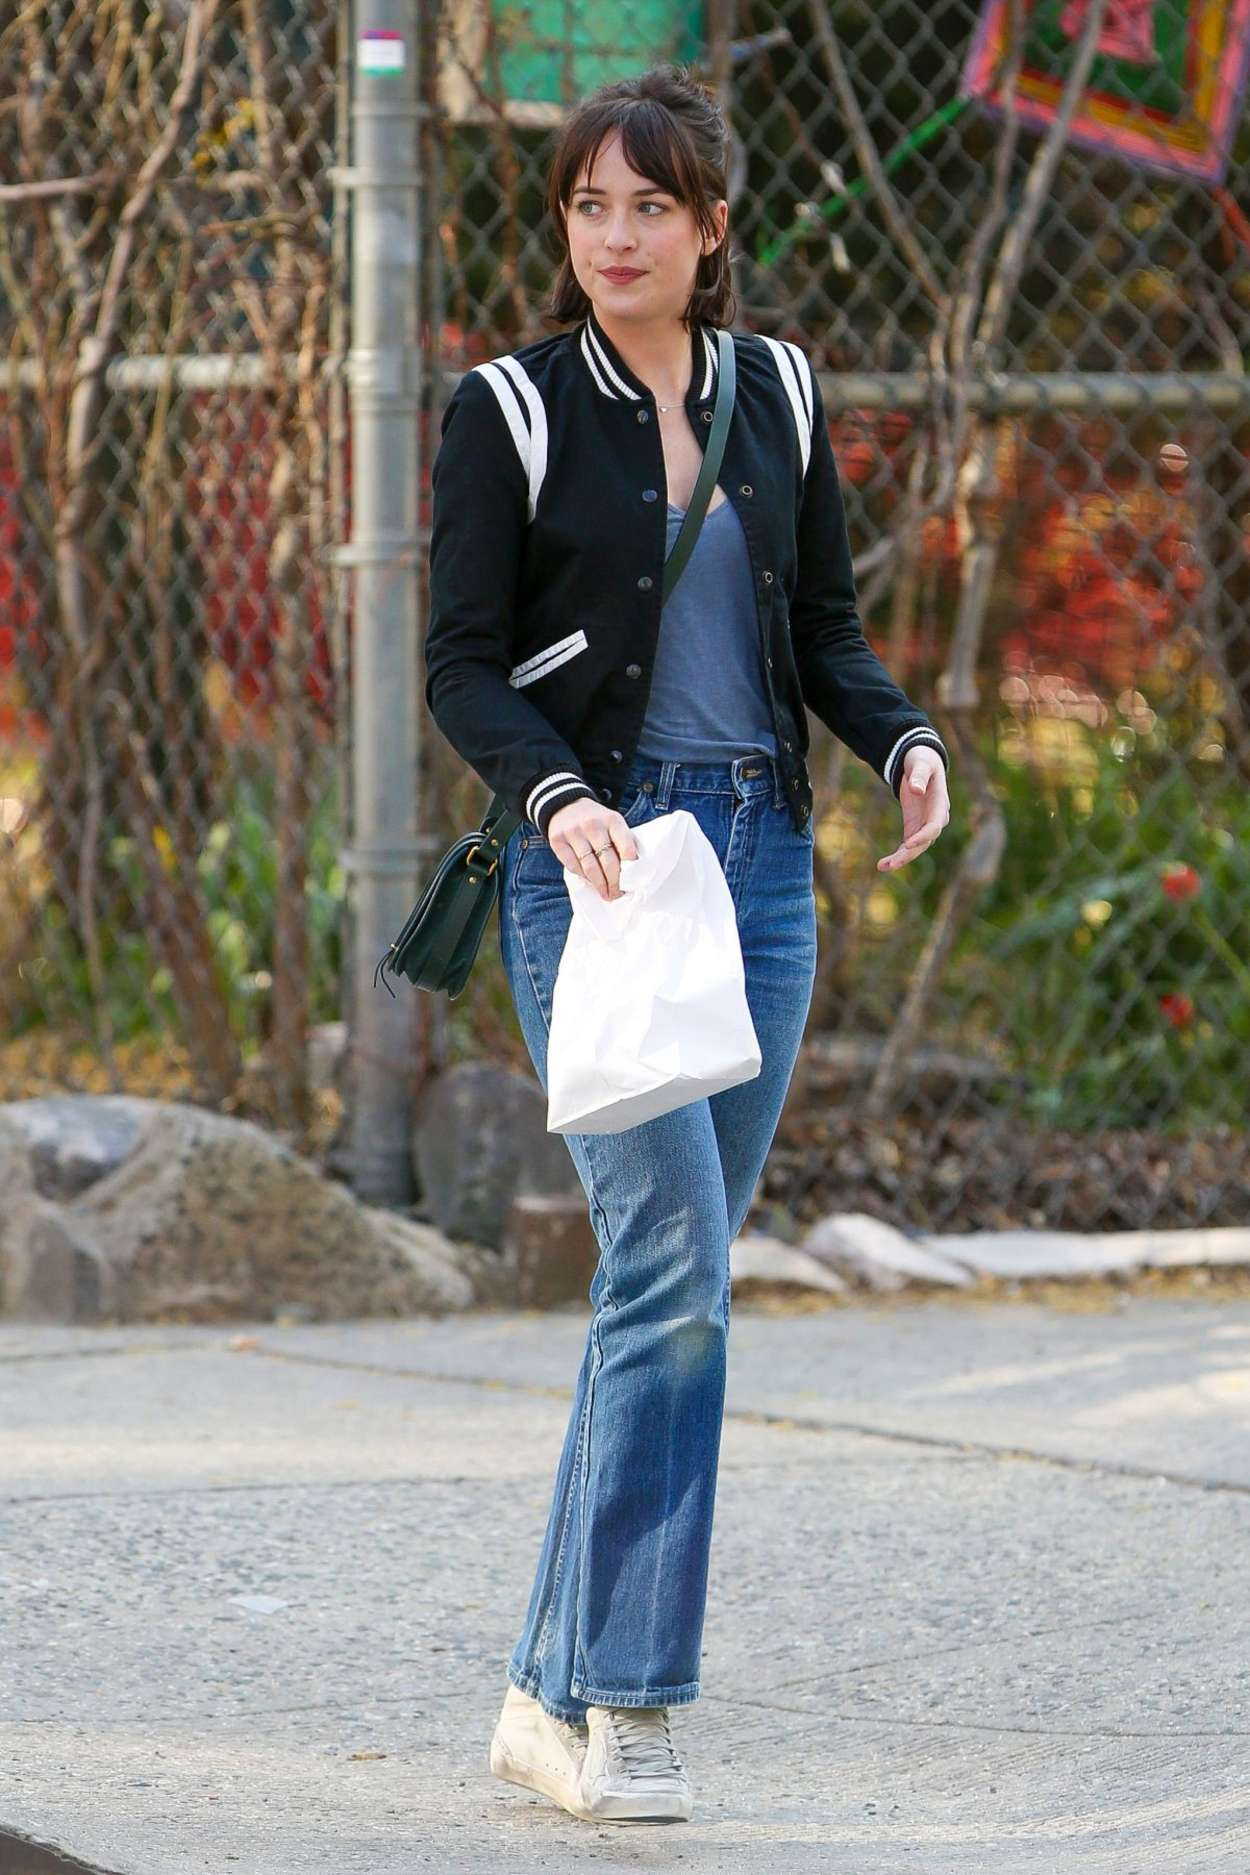 Dakota johnson in jeans on how to be single 30 gotceleb dakota johnson in jeans on how to be single 30 ccuart Choice Image